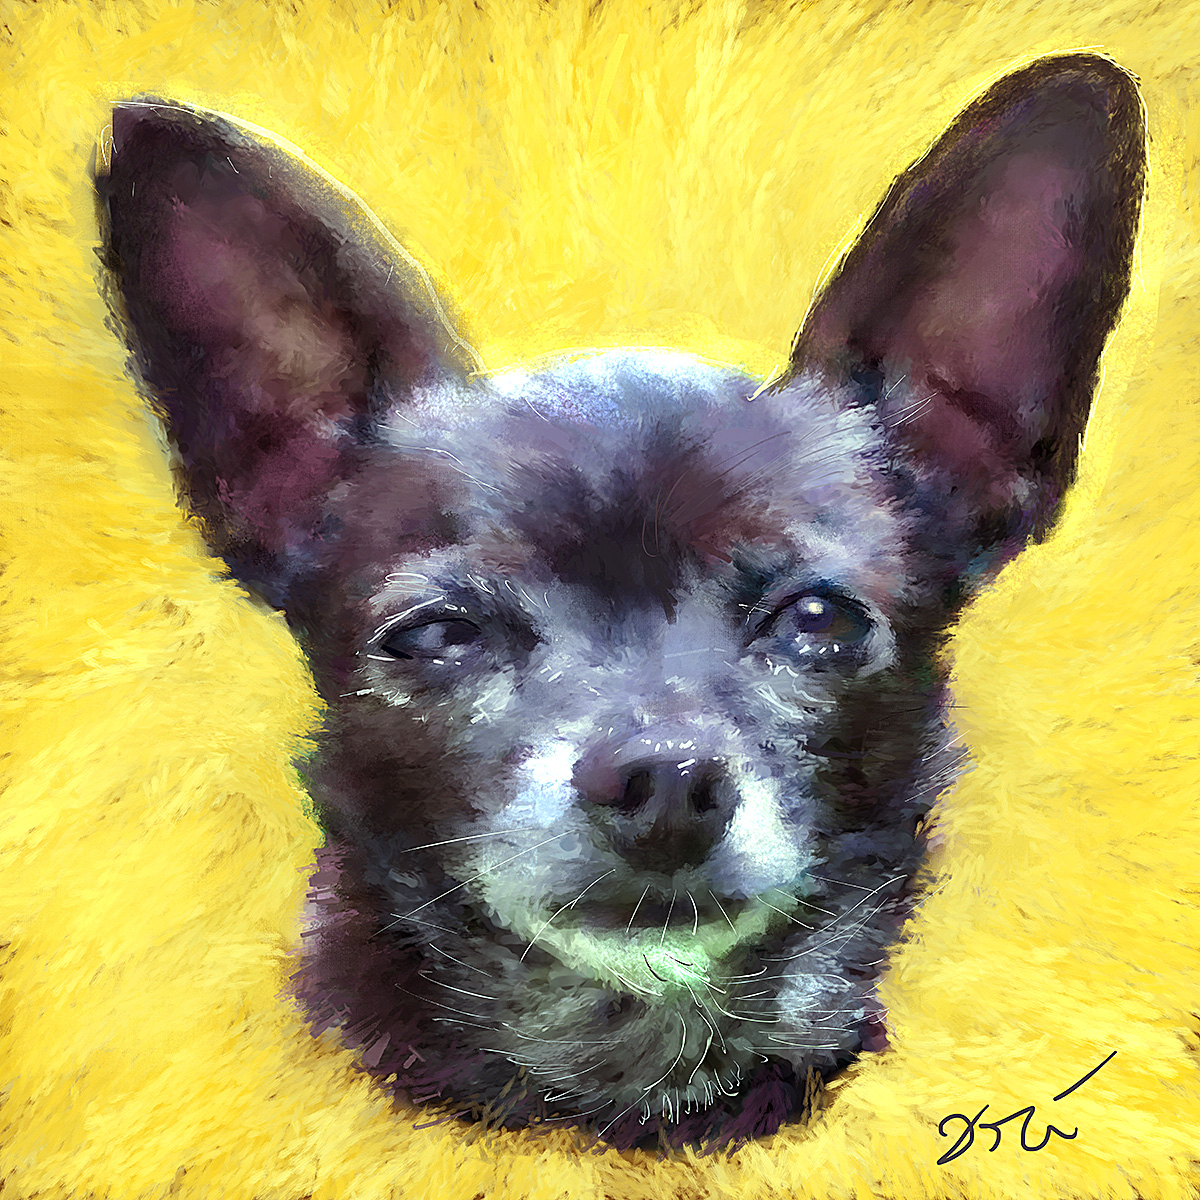 Dogs by Ori | Dog paintings and sculptures by Ori Bengal